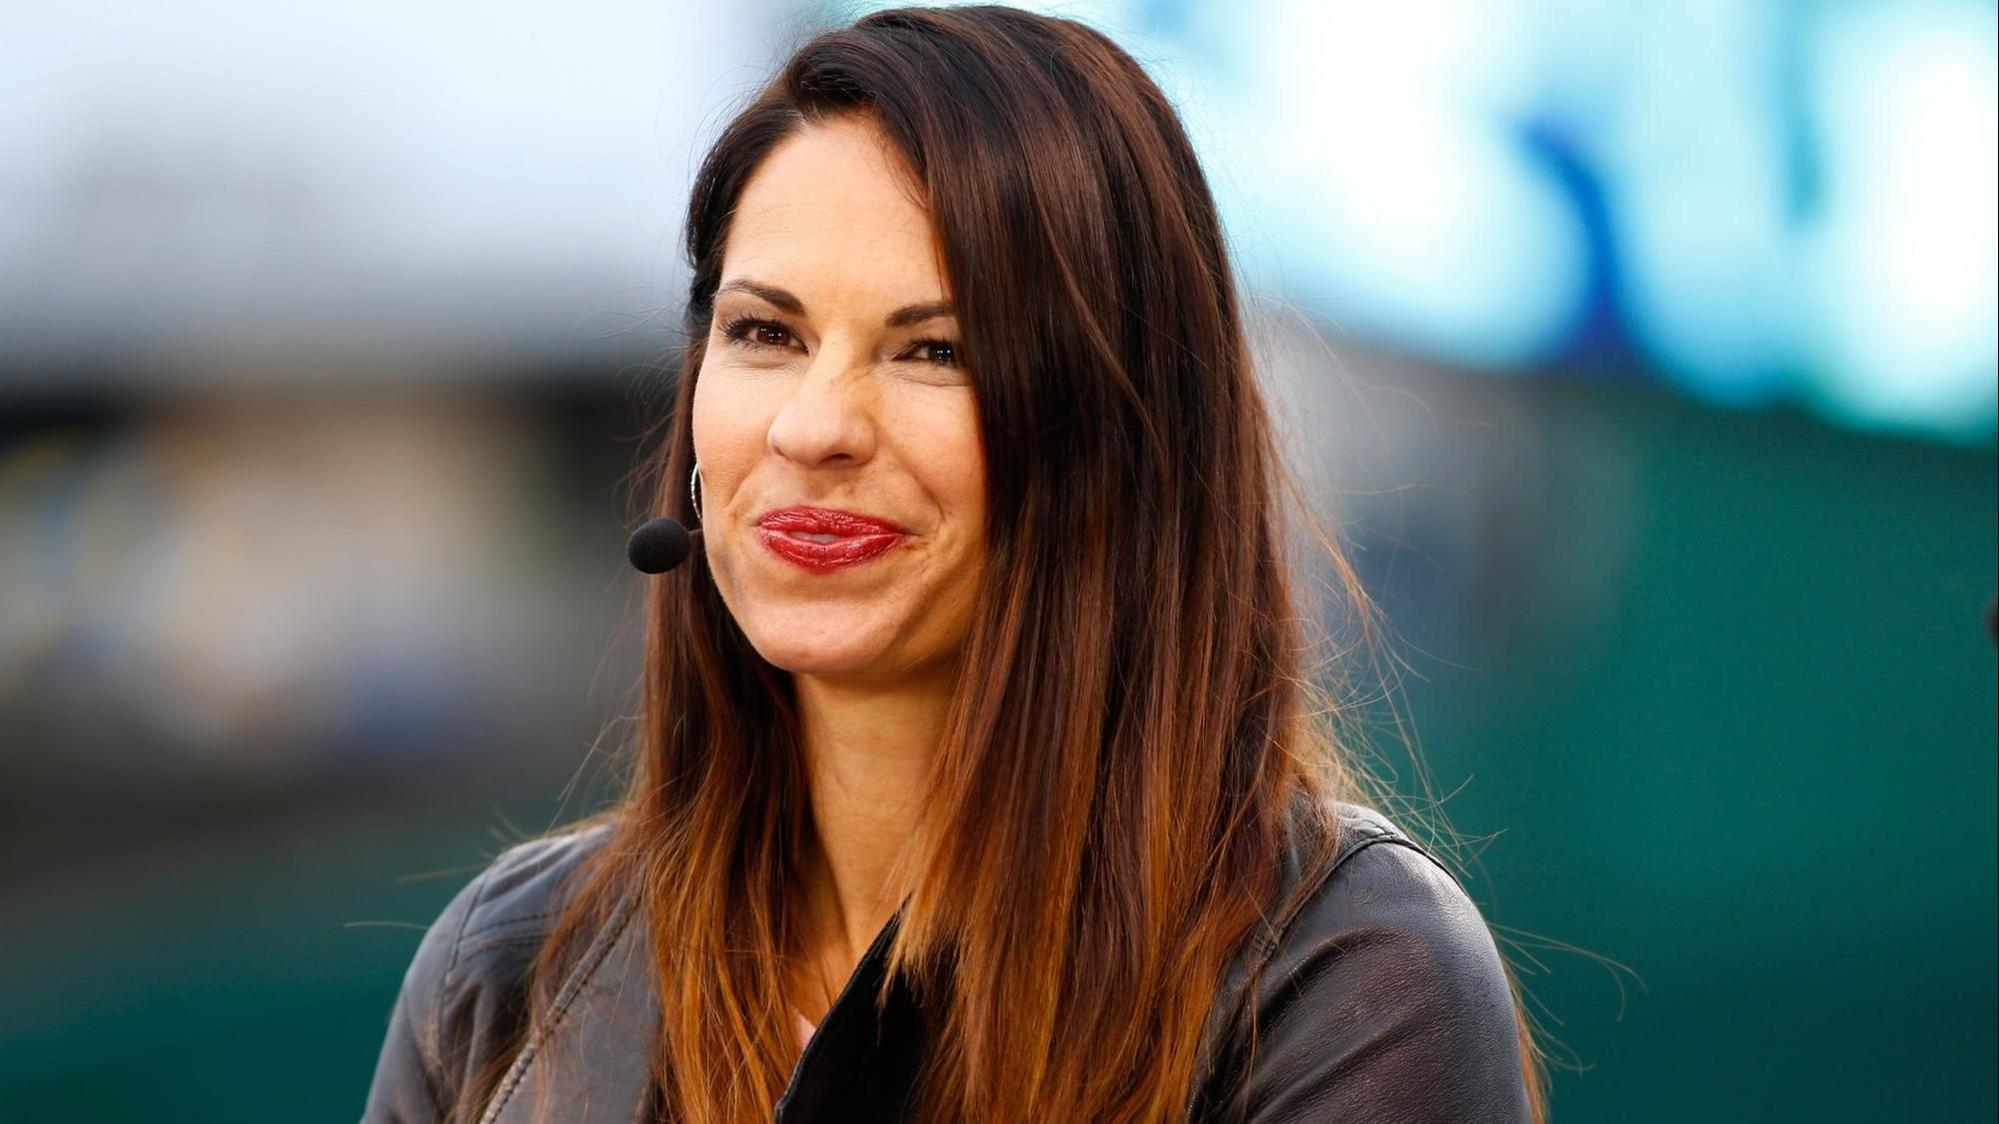 ESPN's Jessica Mendoza adds Mets front-office job. But should she, A-Rod, David Ross, Jim Thome and others double-dip?